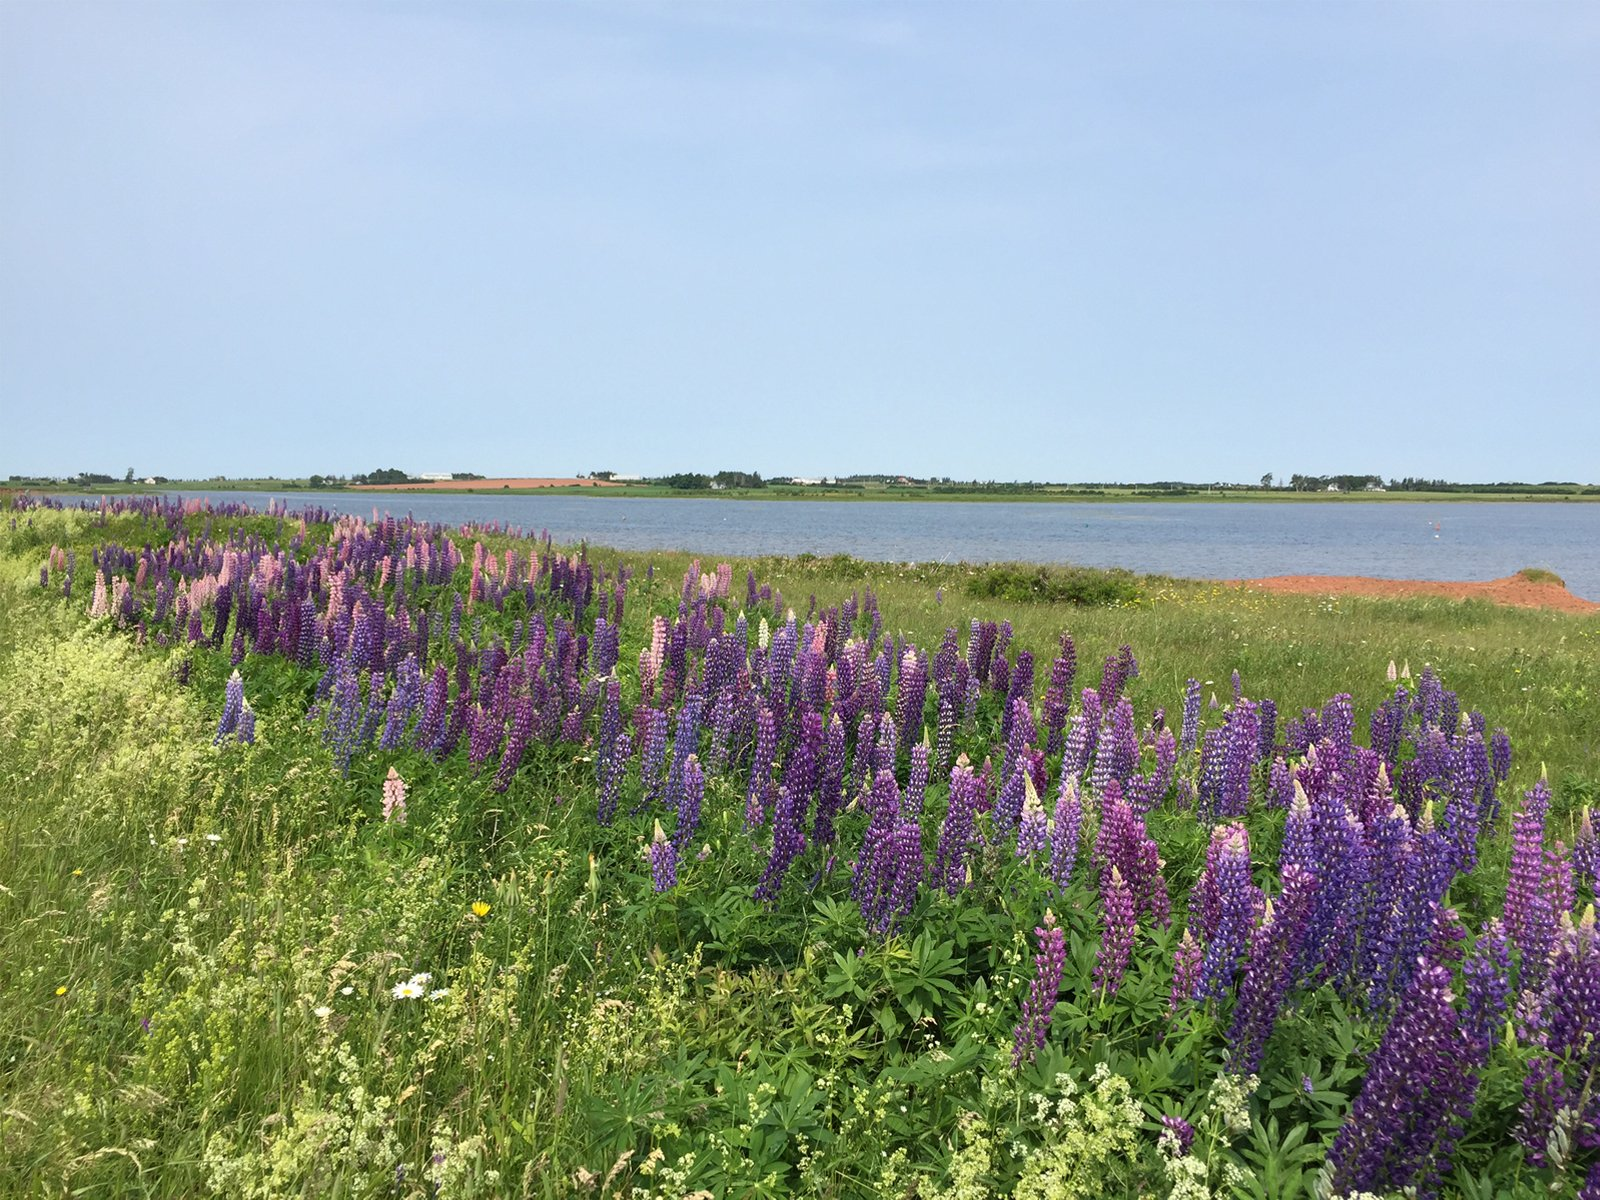 Purple lilacs in Prince Edward Island, Canada